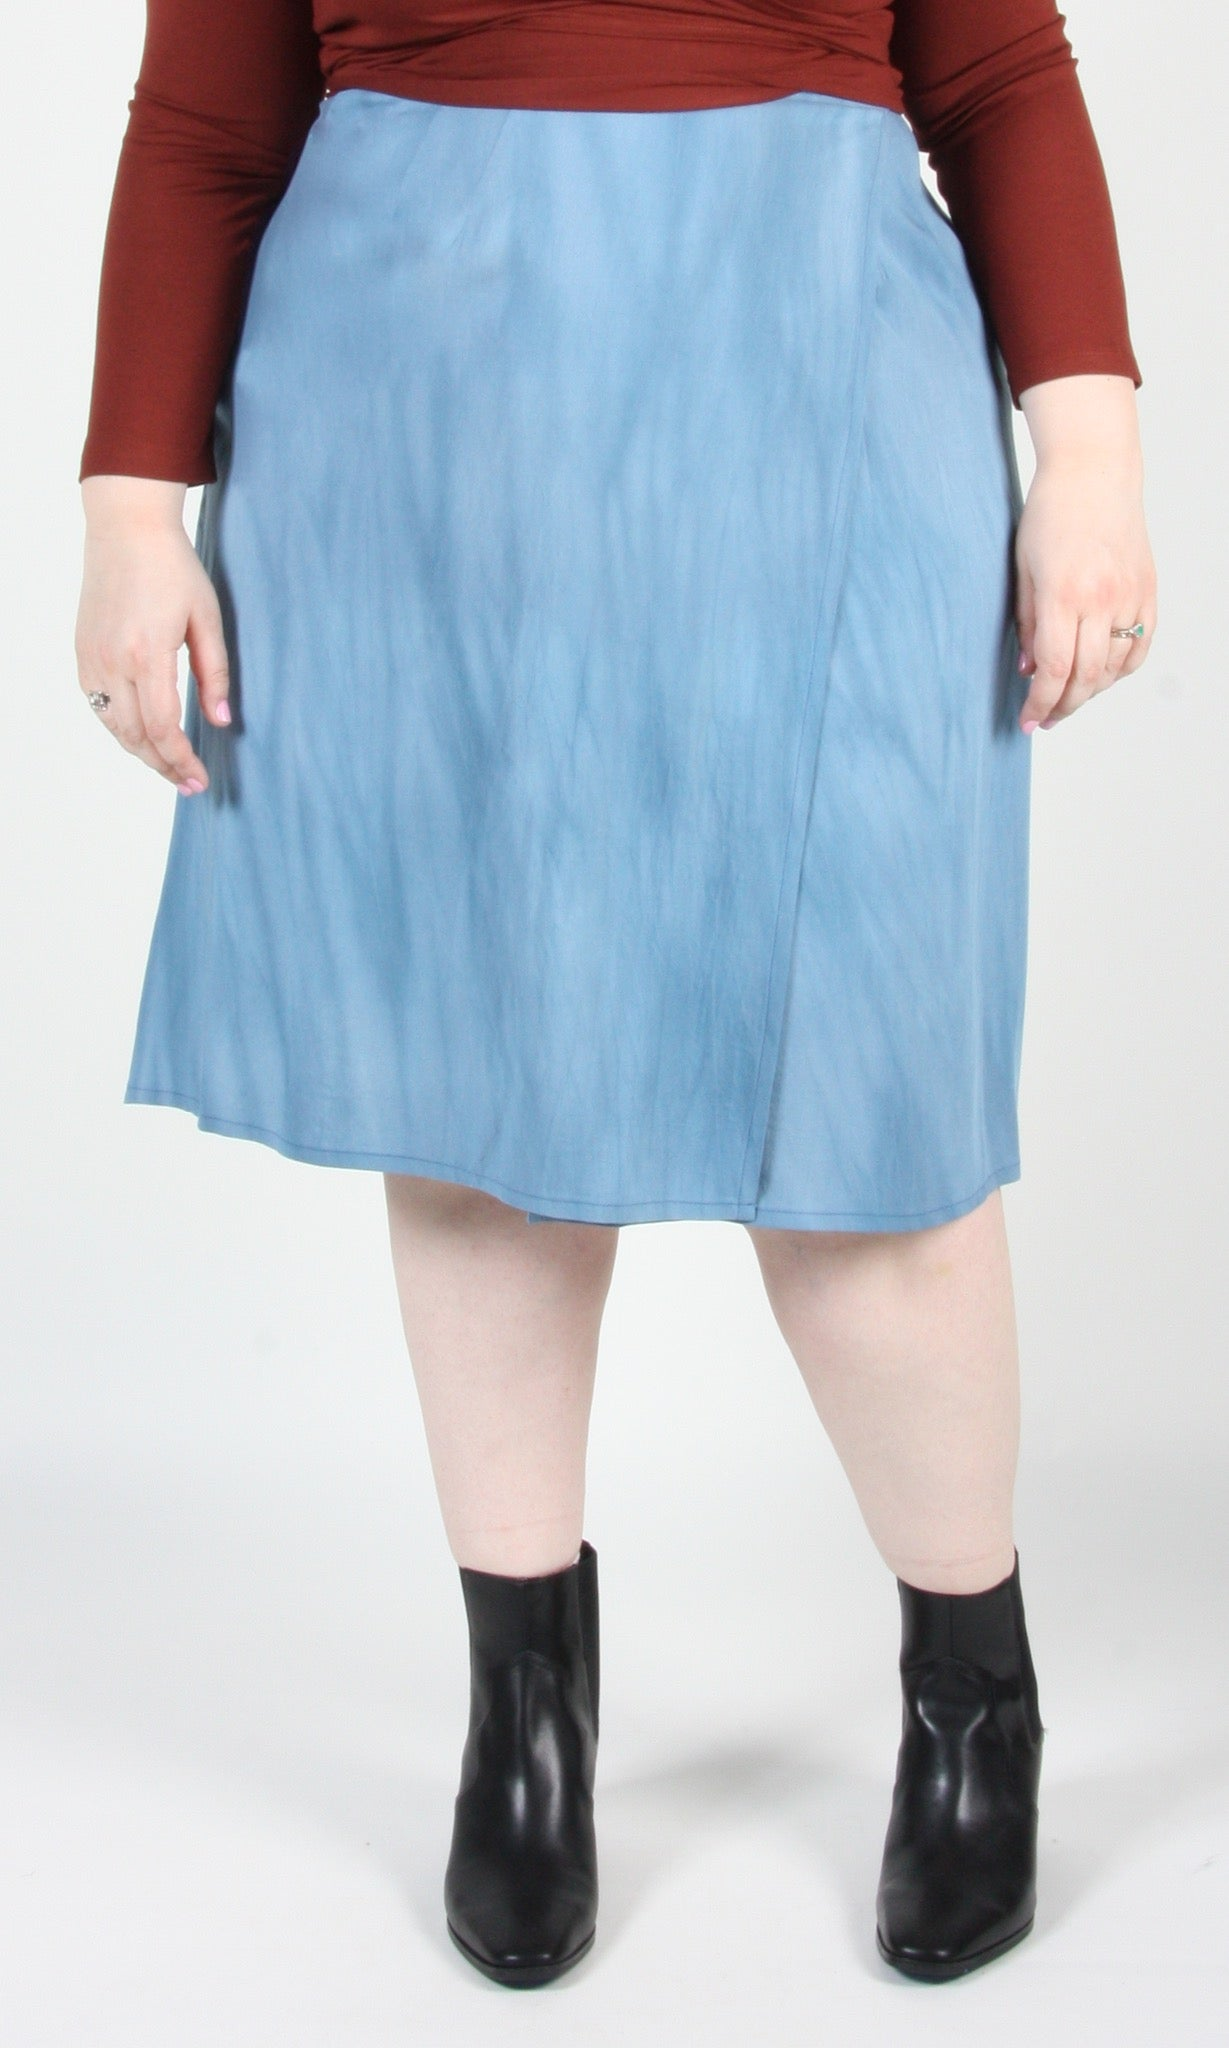 Tournepierre Skirt - Sand Washed Blue